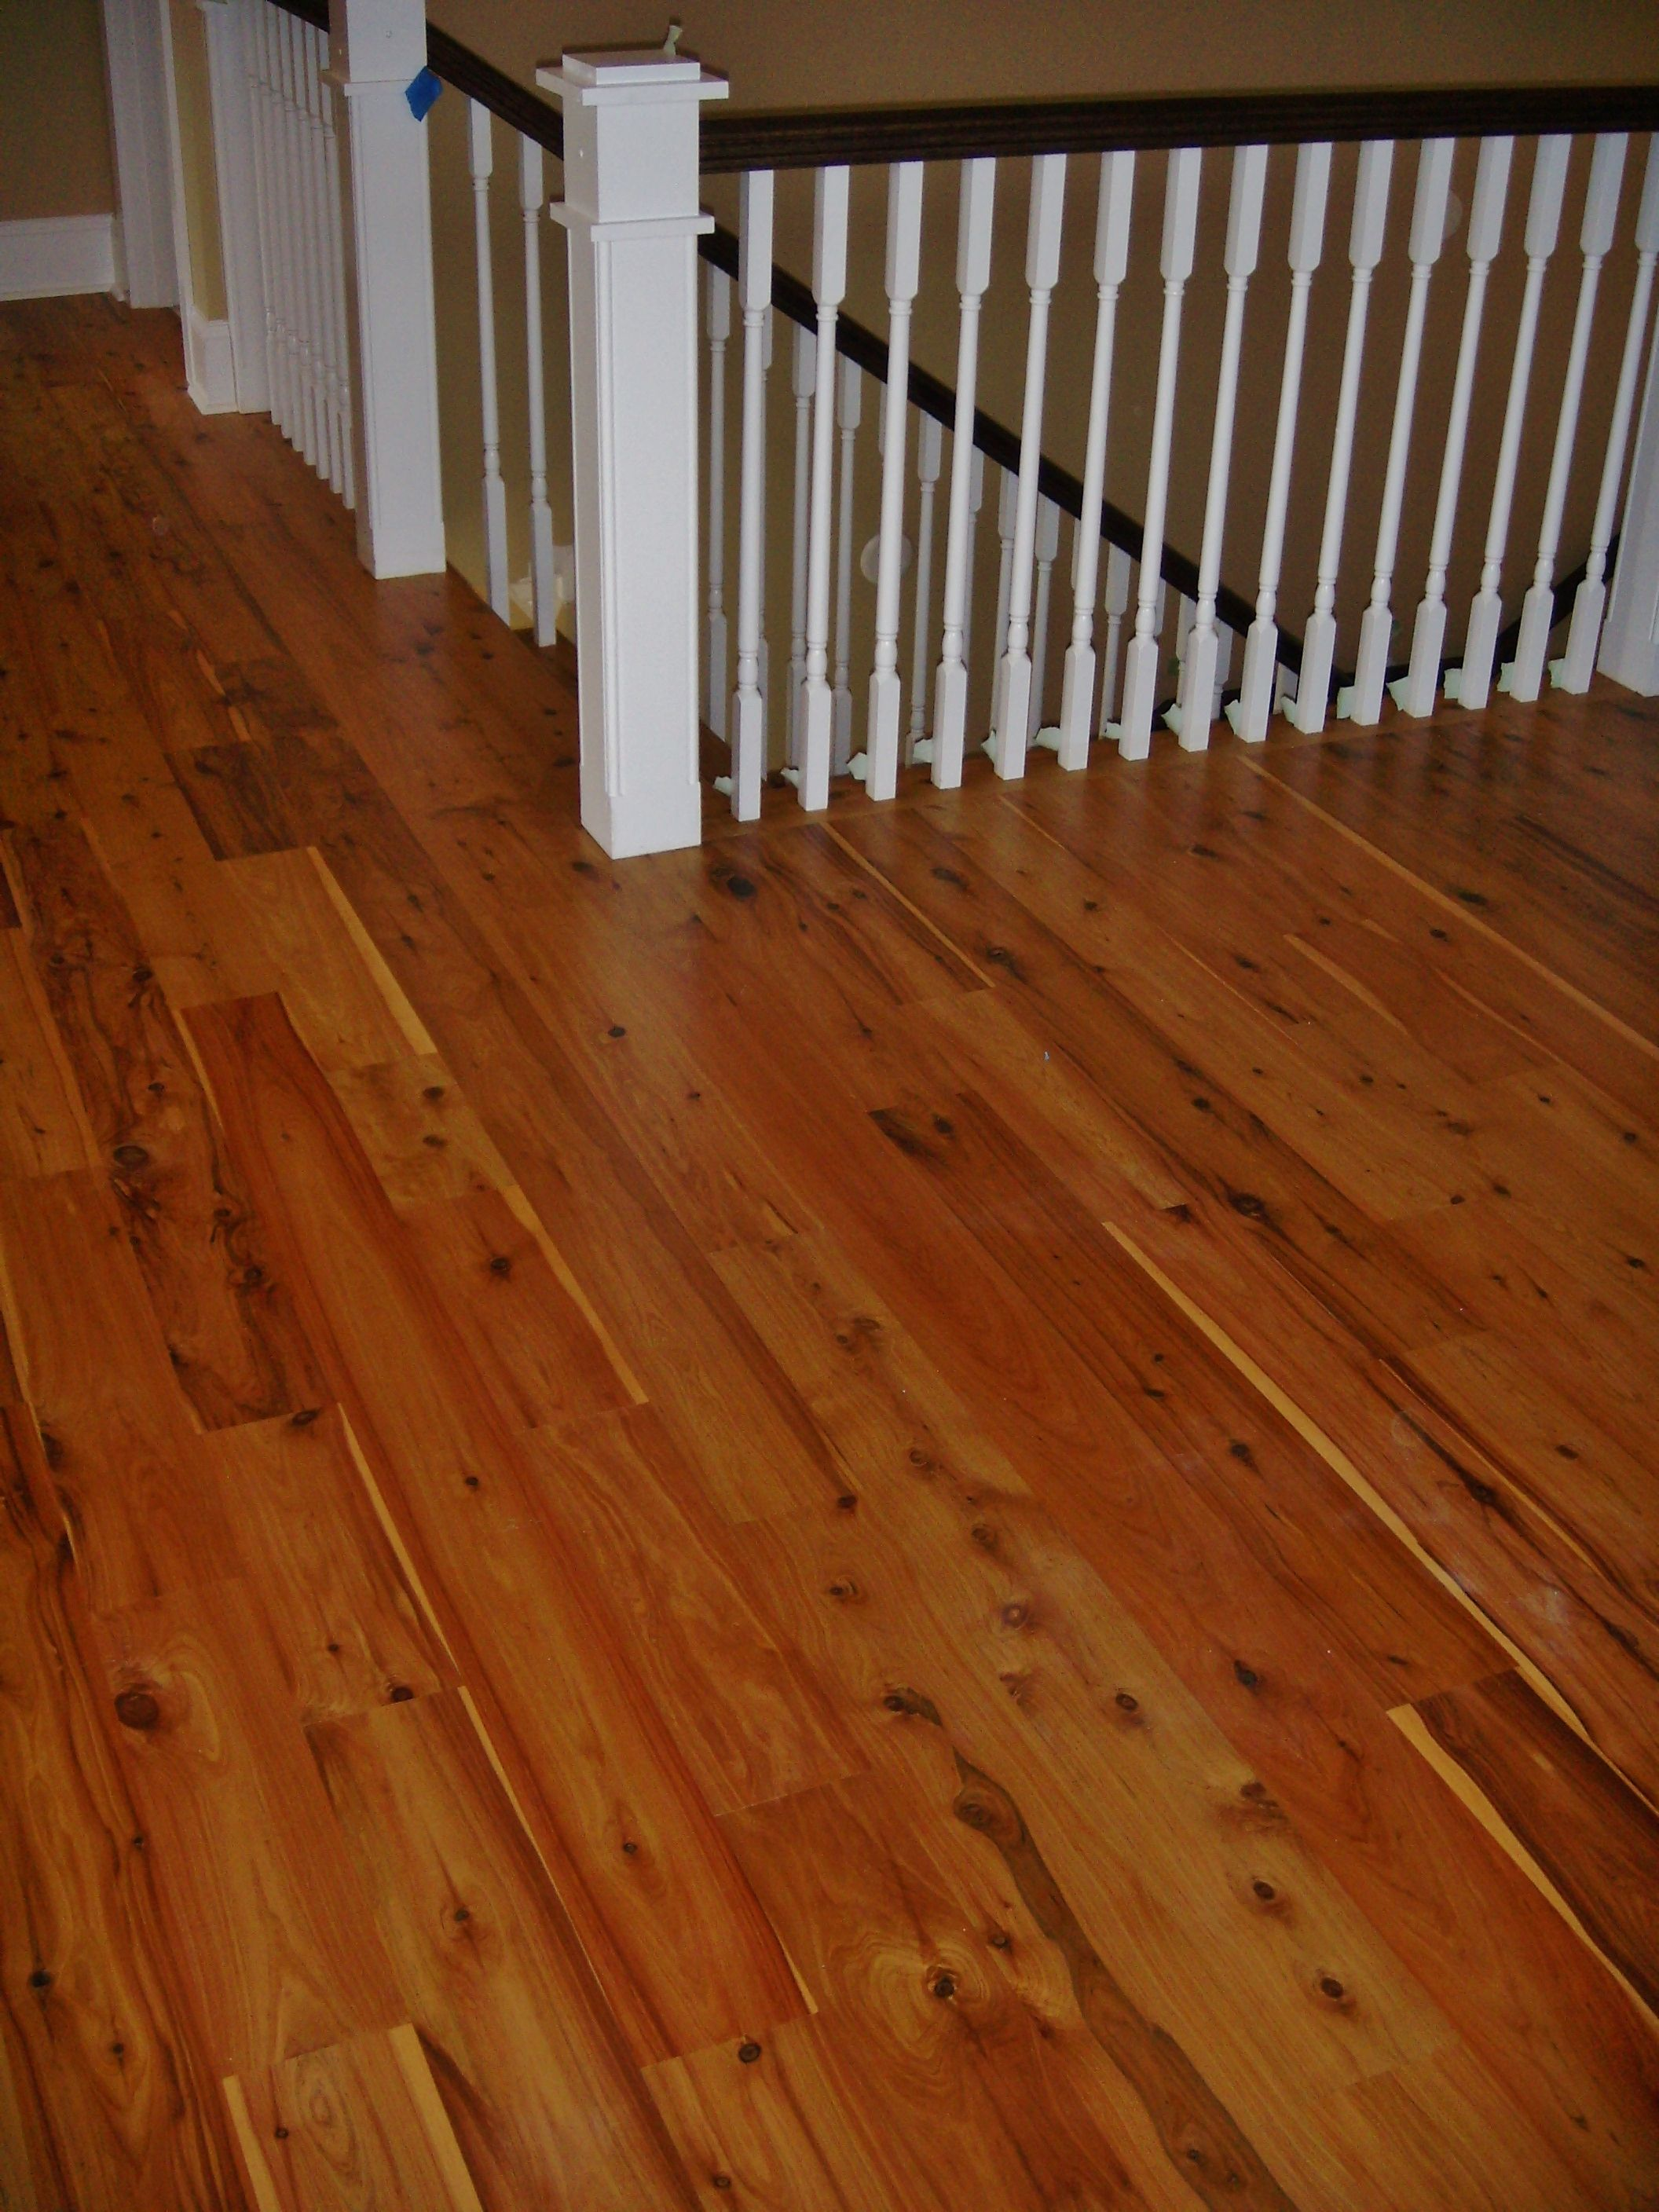 Australian Cypress Hardwood Floors Finished With Coats Of - Australian cypress hardwood flooring reviews